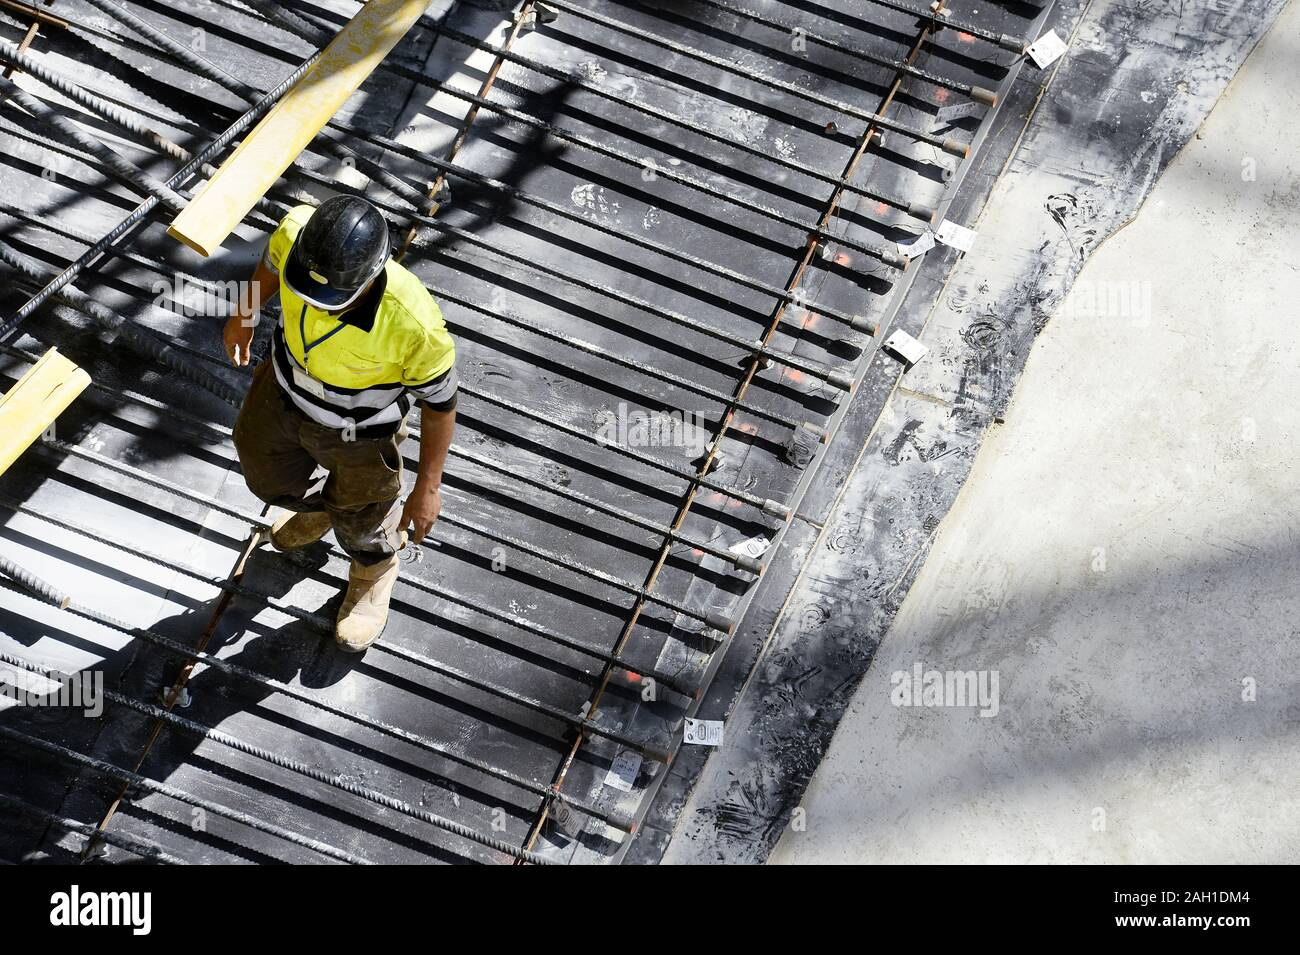 Worker on construction site - France Stock Photo